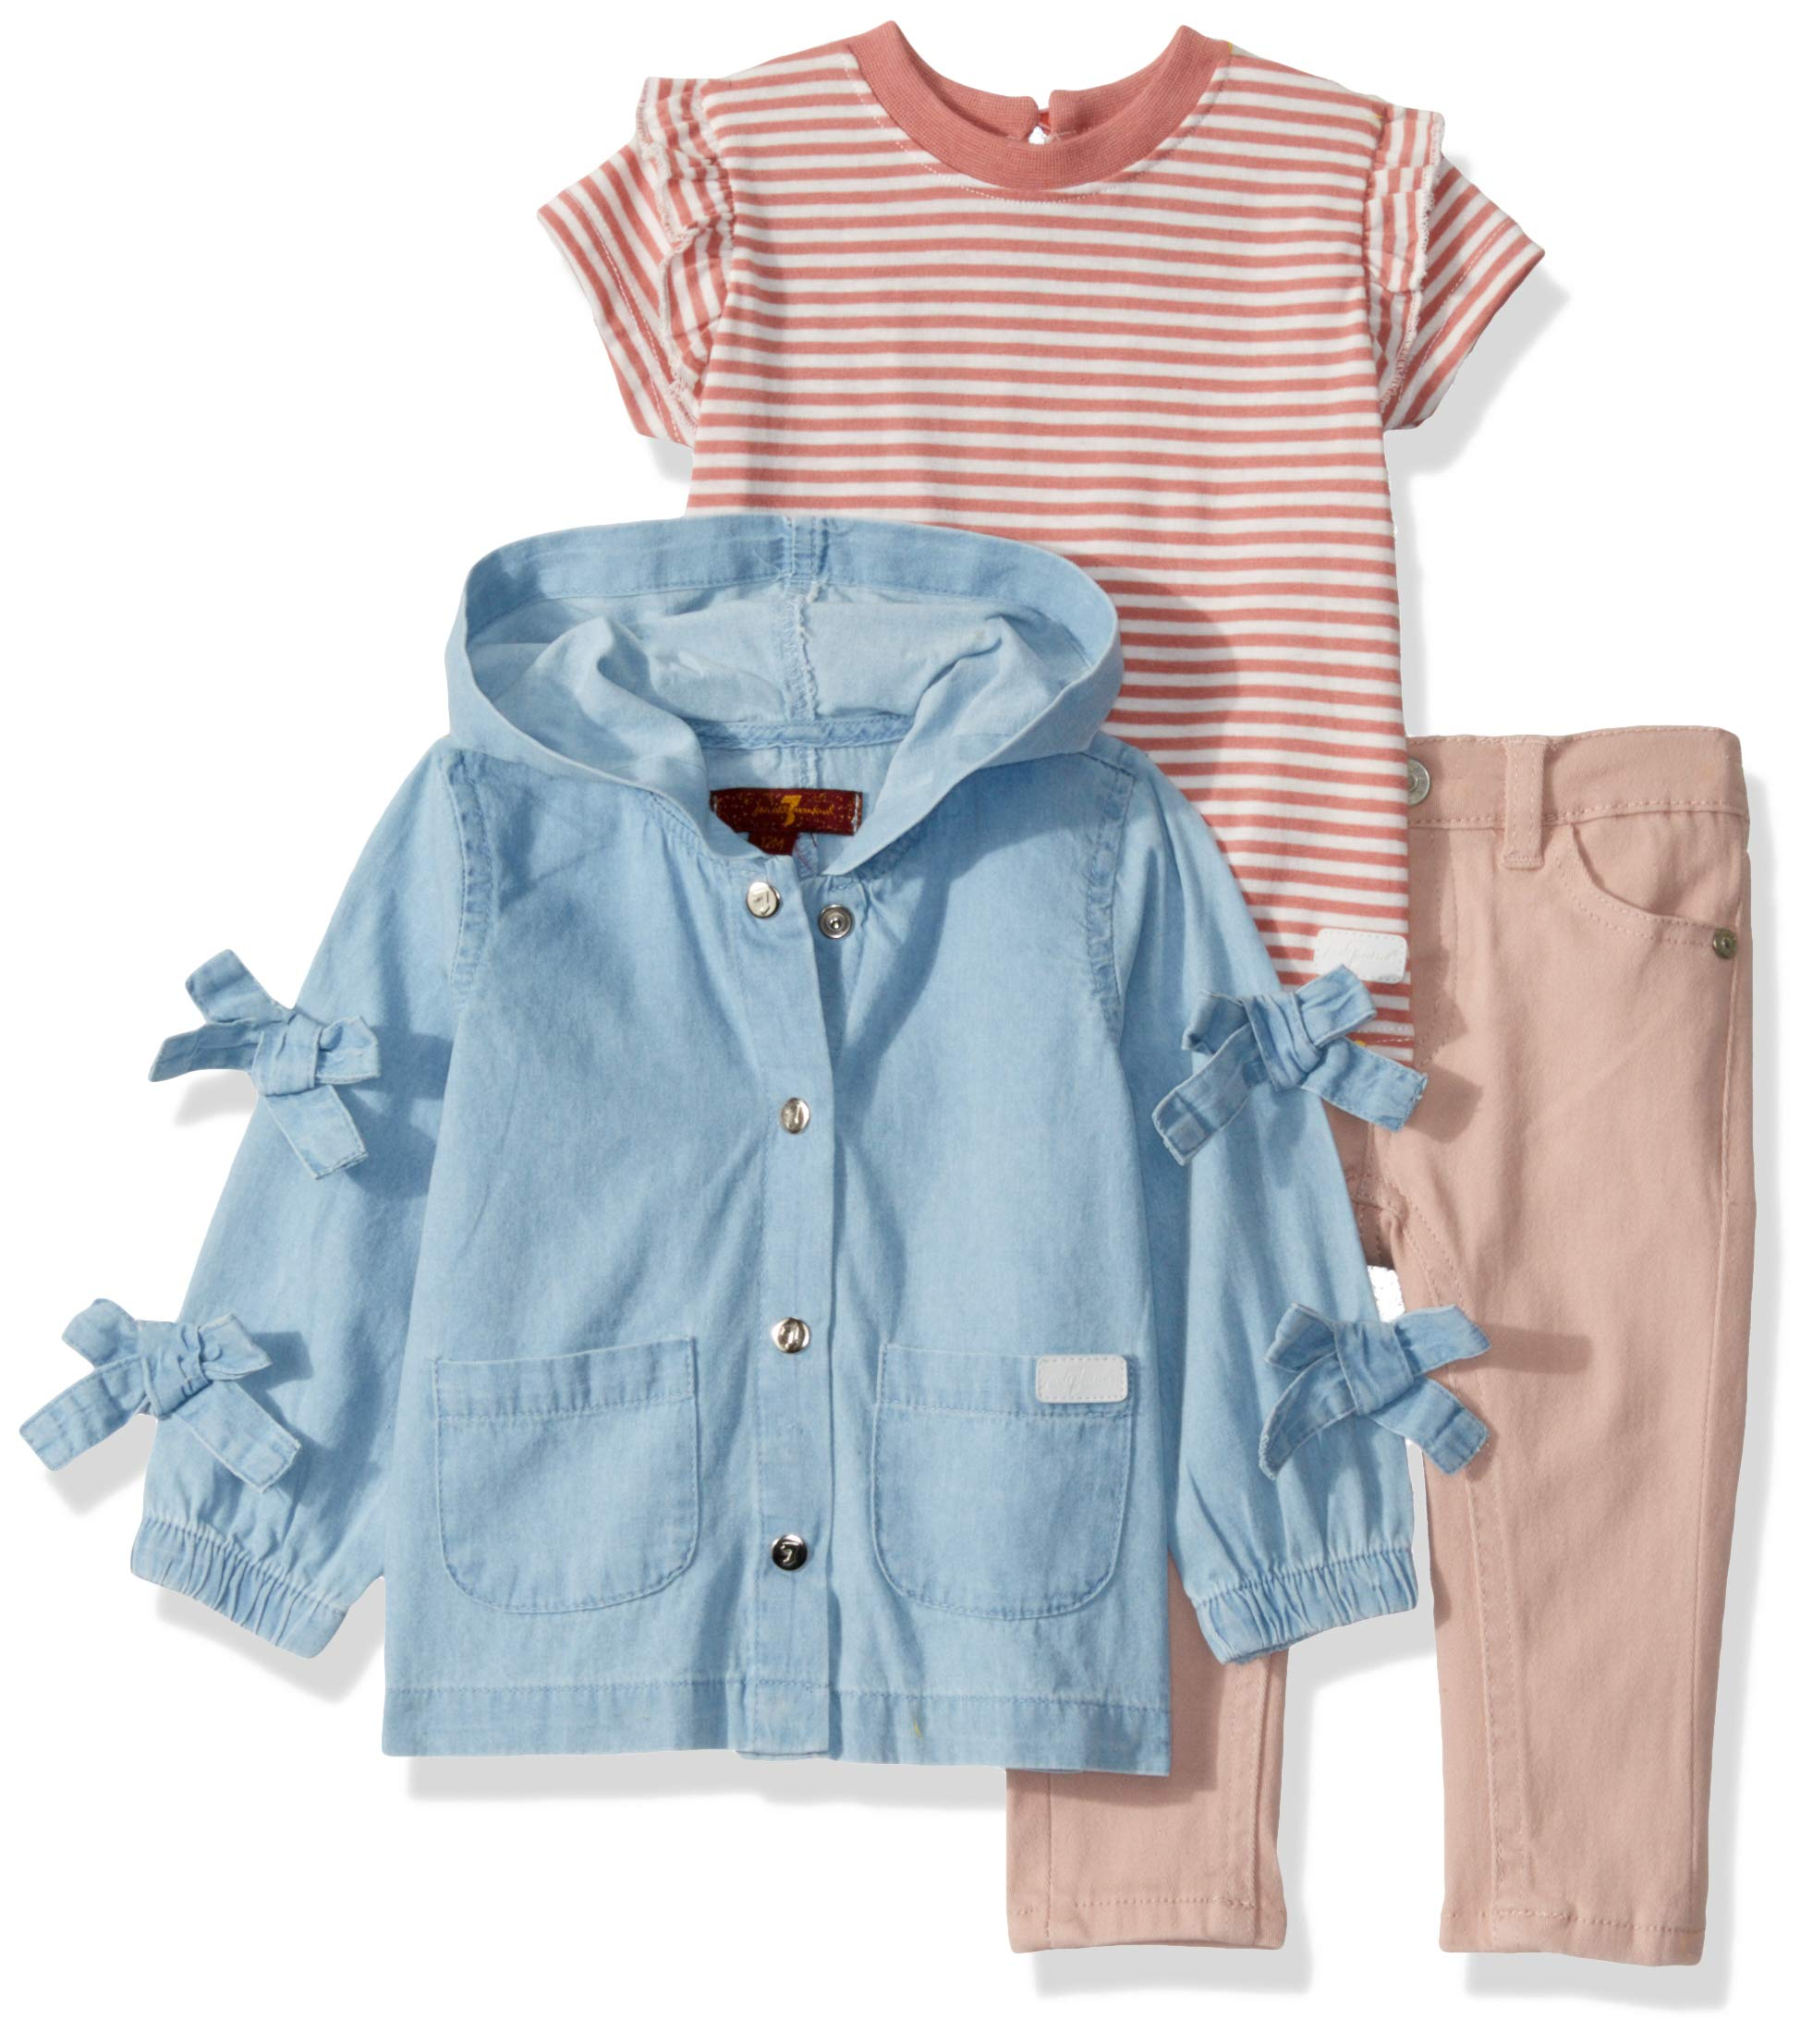 7 For All Mankind Baby Girls 3 Piece Set, Light Wash/Rosy Stirpe/Antique Pink, 18M by 7 For All Mankind